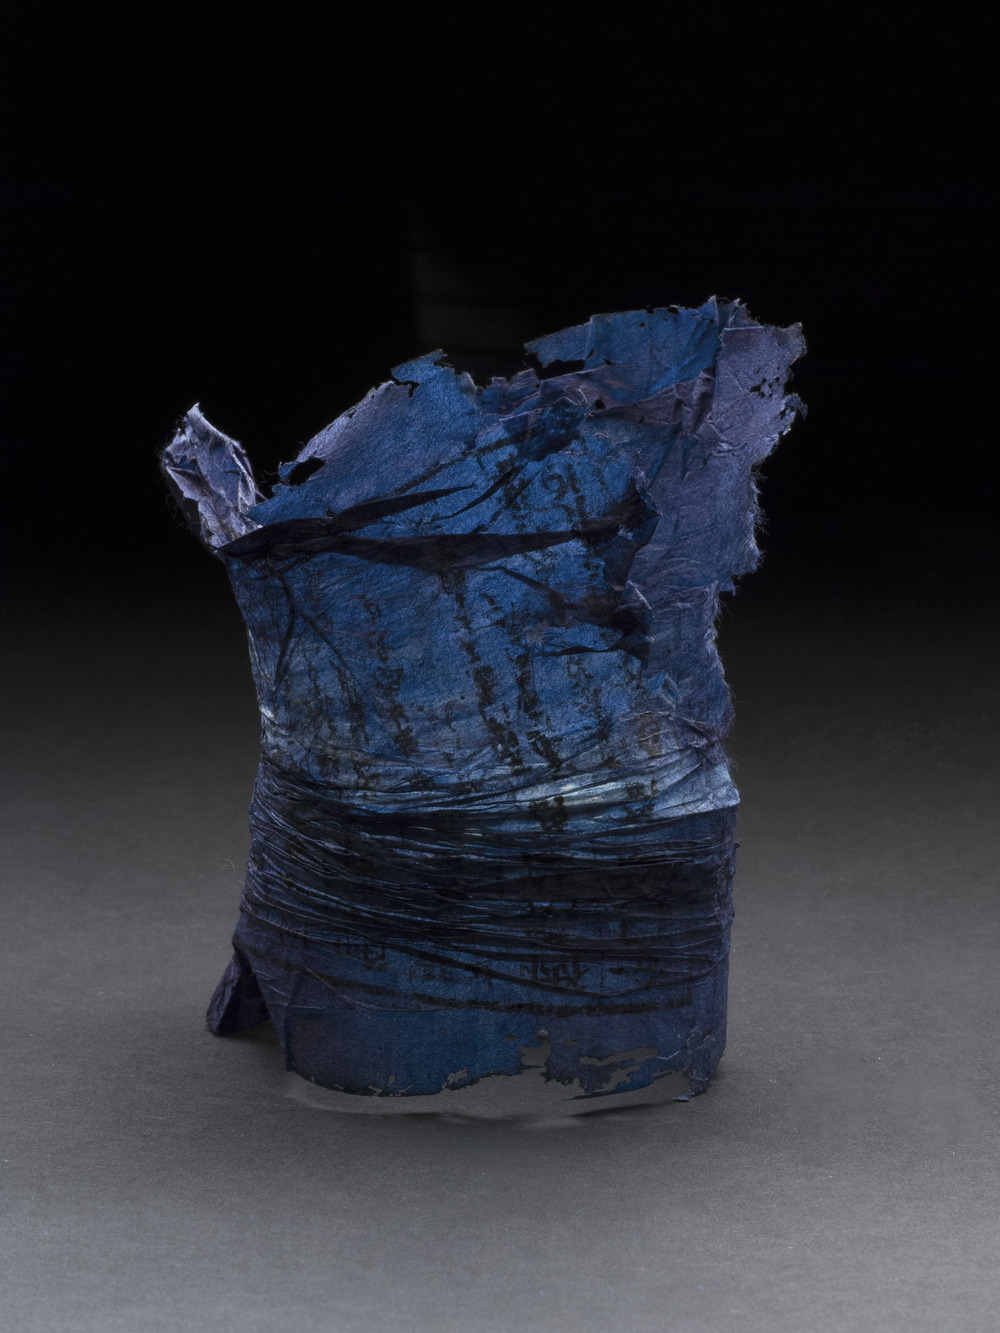 Yuko Kimura    Indigo Shiwa Shiwa (wrinkle wrinkle) no. 2  , 2013 Indigo dye on pleated old bookpages from Japan  /  3.75 x 3.625 x 2.75 inches  /  9.5 x 9.2 x 7 cm  /  YuK 23